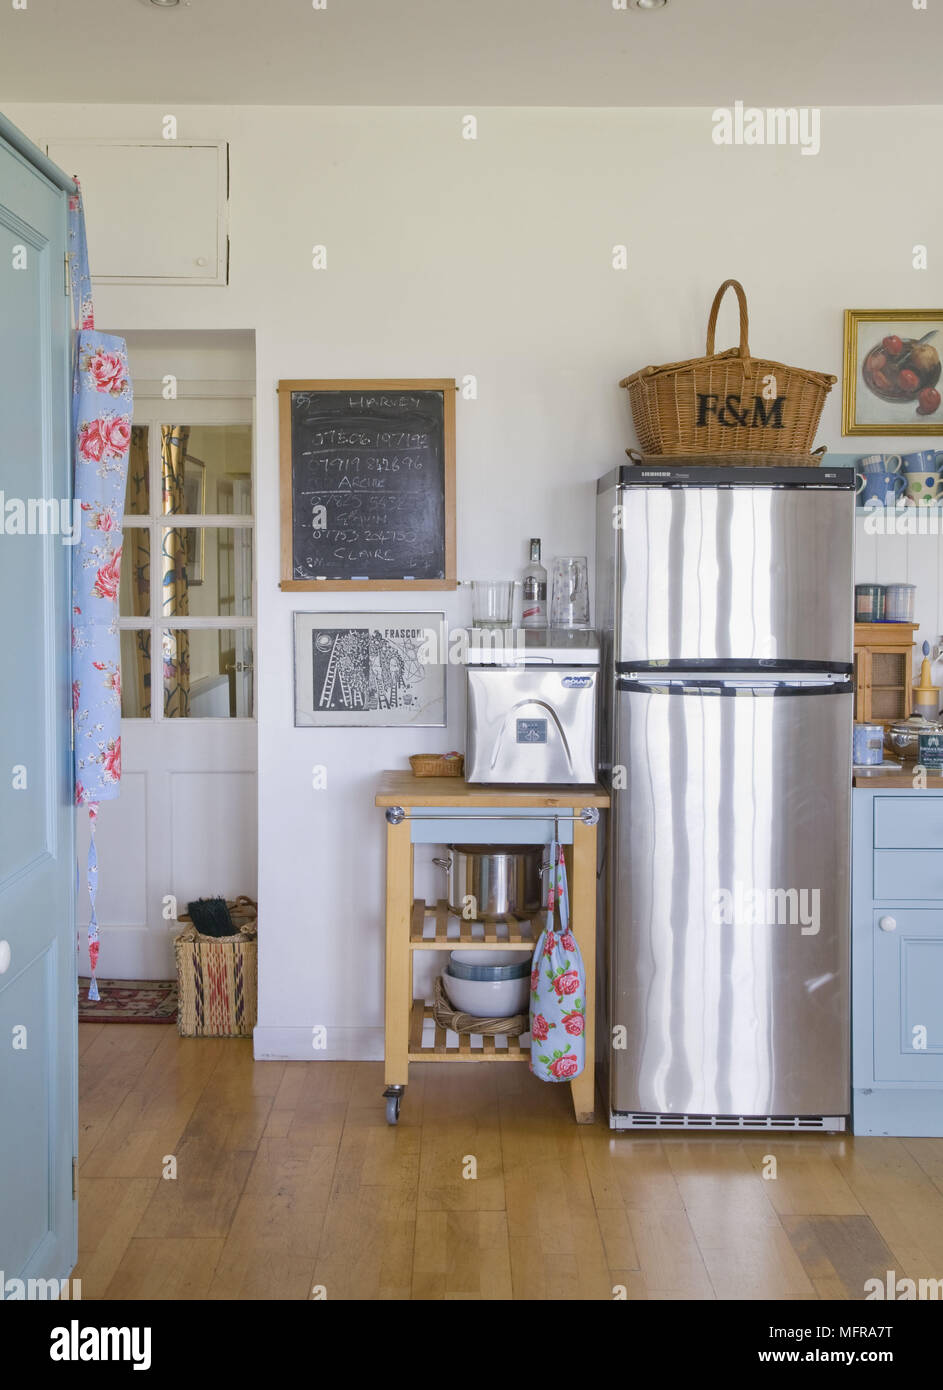 Storage Trolley Next To Stainless Steel Fridge In White And Blue Kitchen